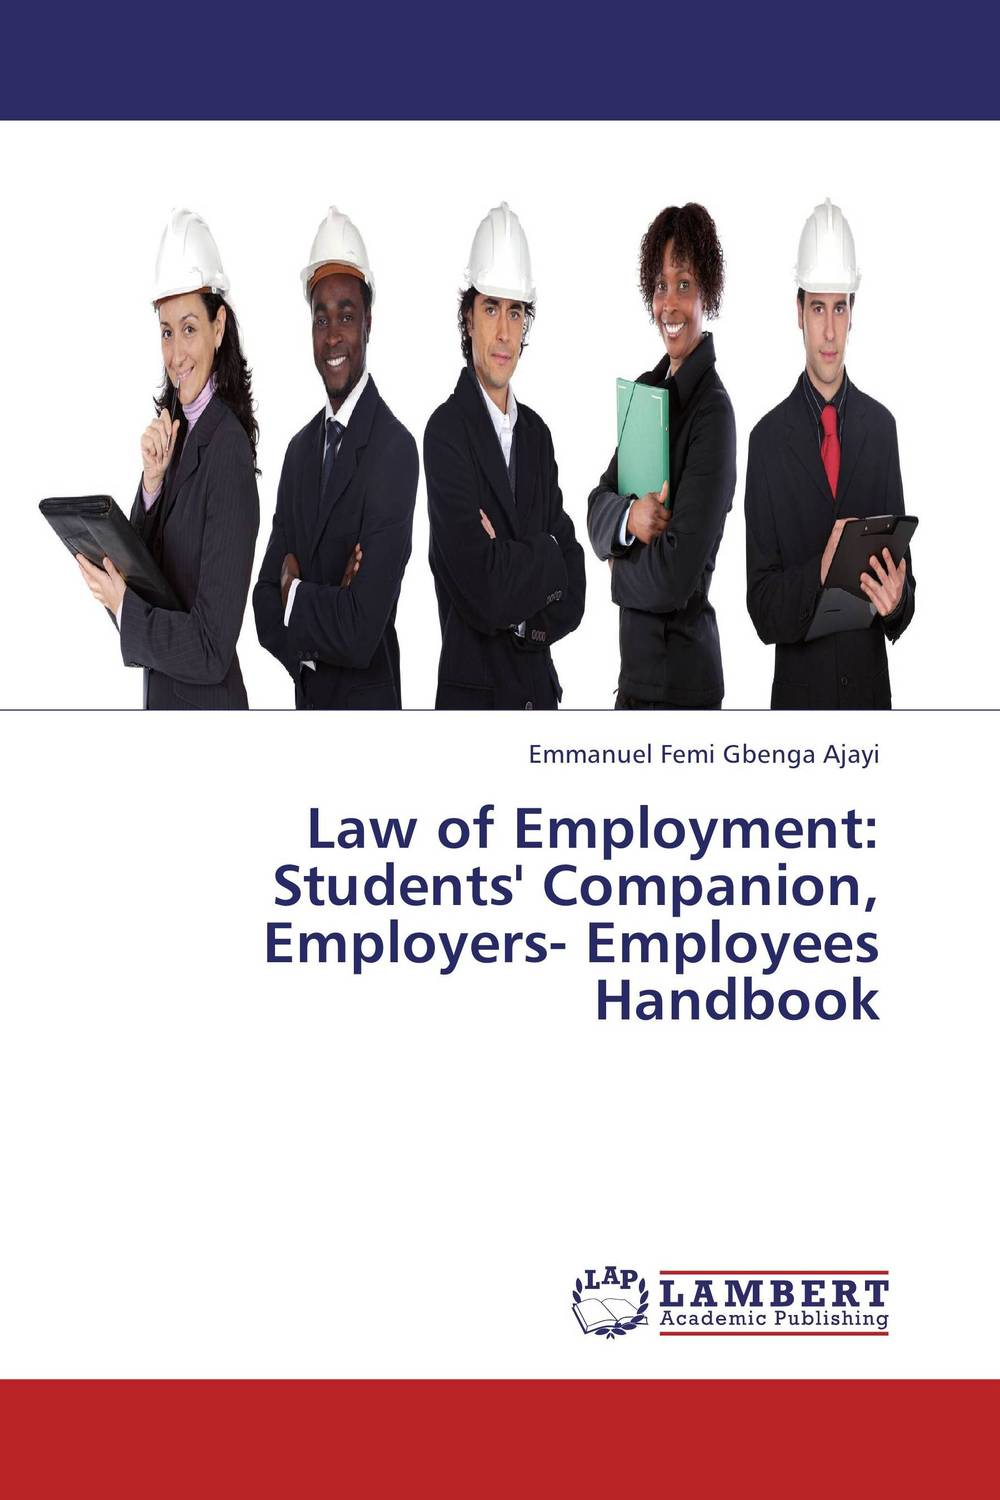 Law of Employment: Students' Companion, Employers- Employees Handbook